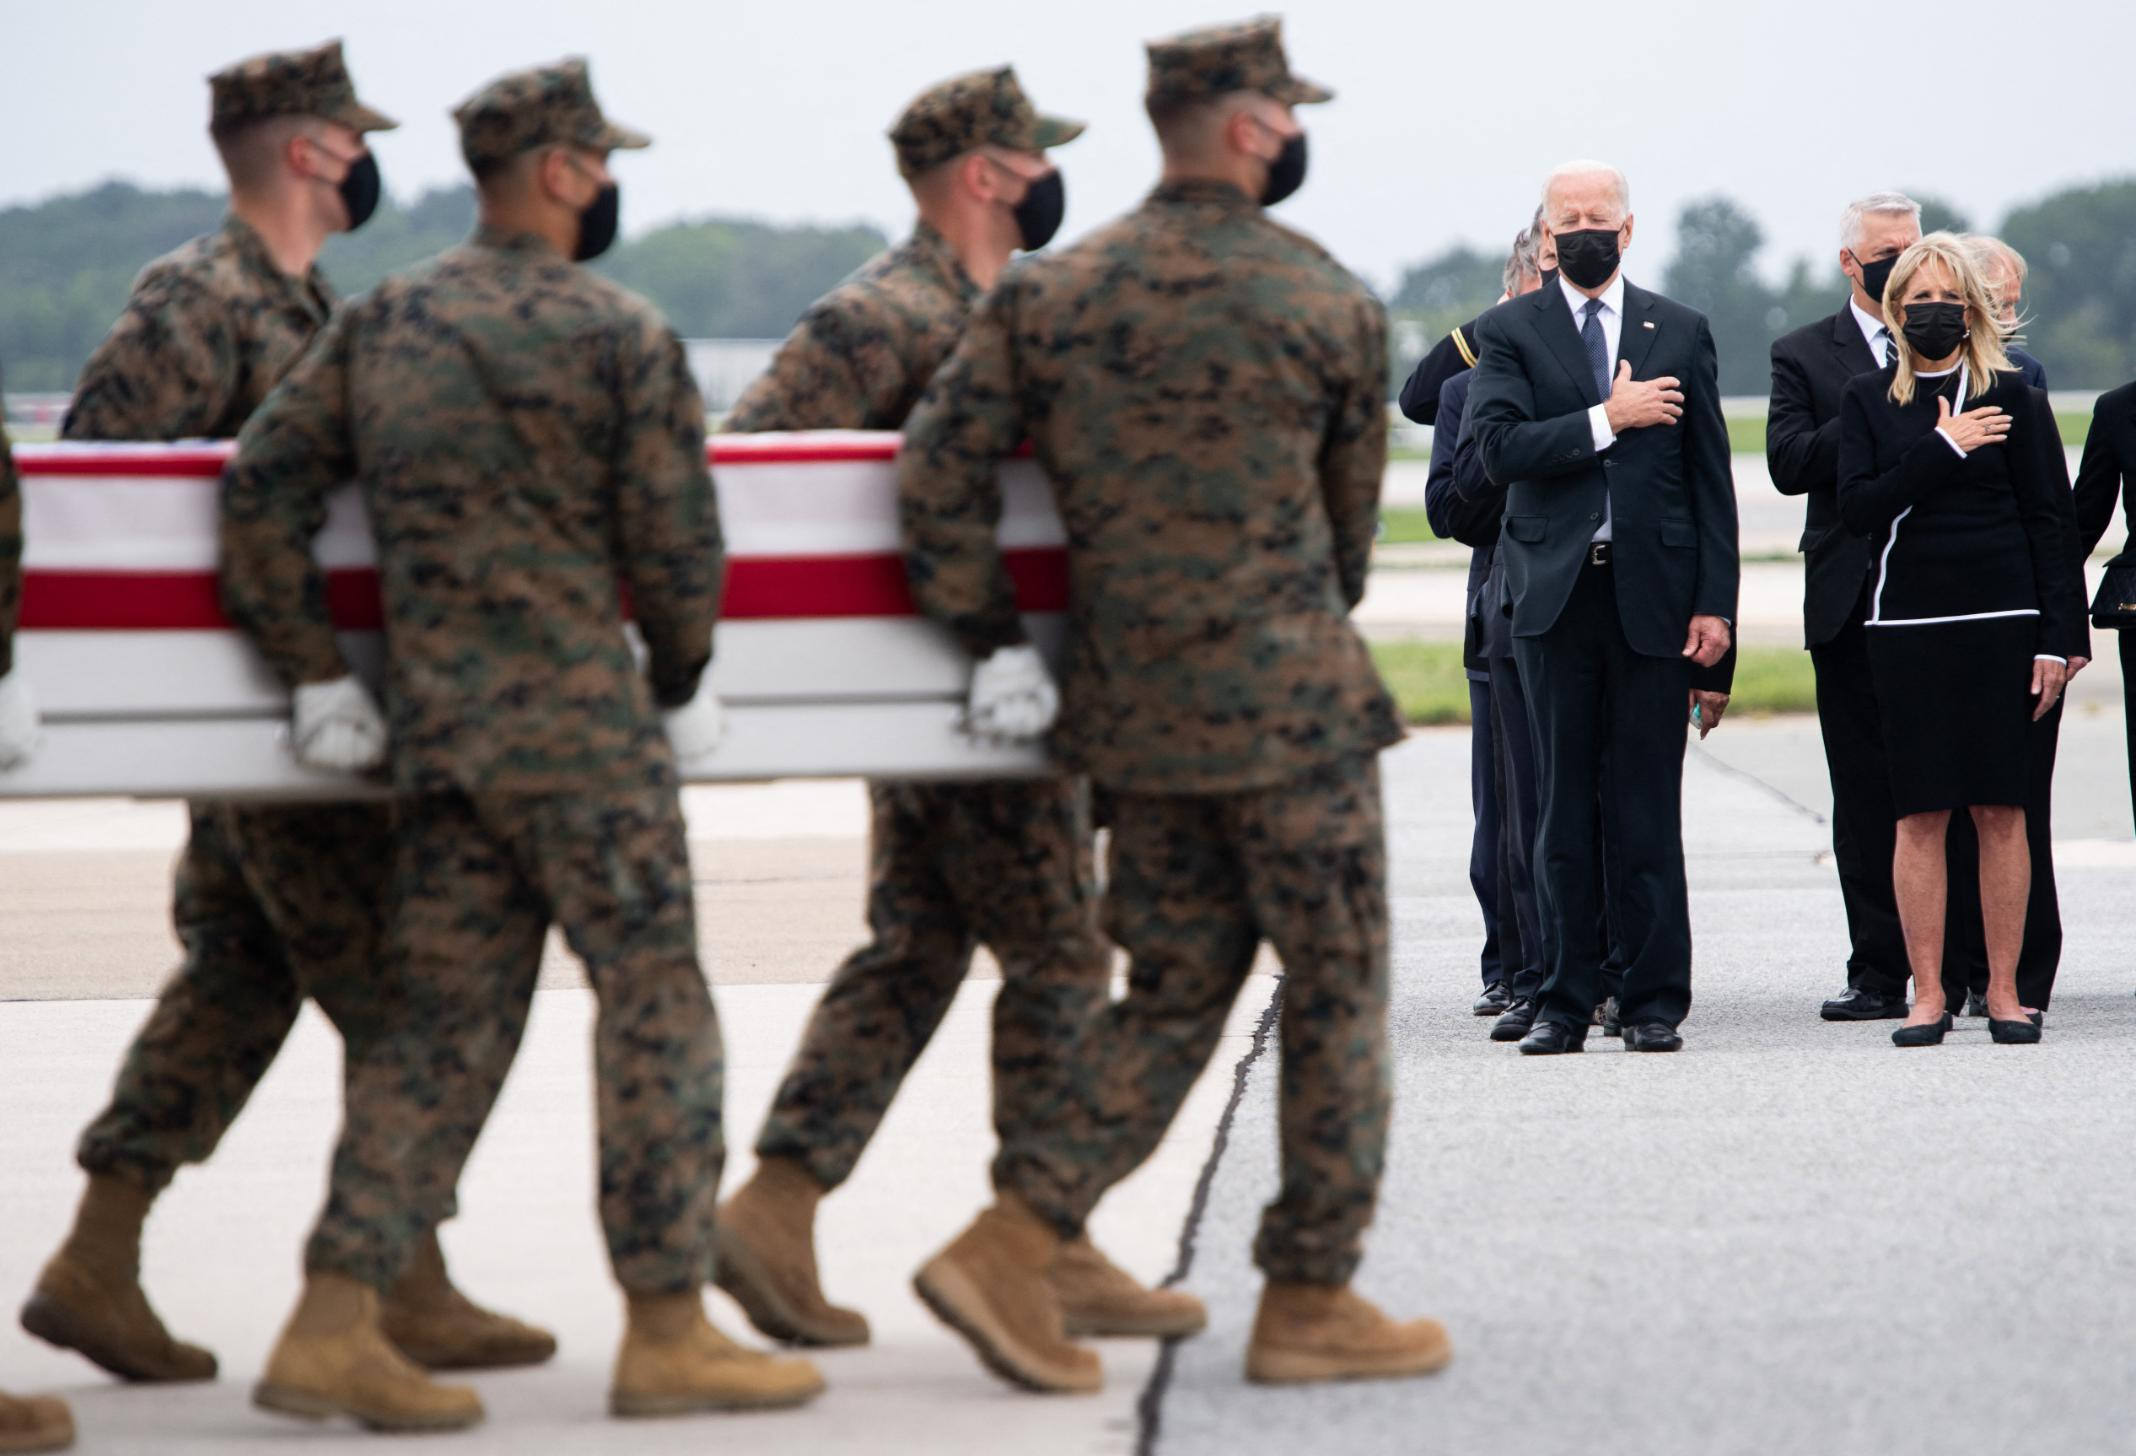 Fact check: Conservative tweeters falsely claim Biden didn't show up at Dover to honor troops' remains